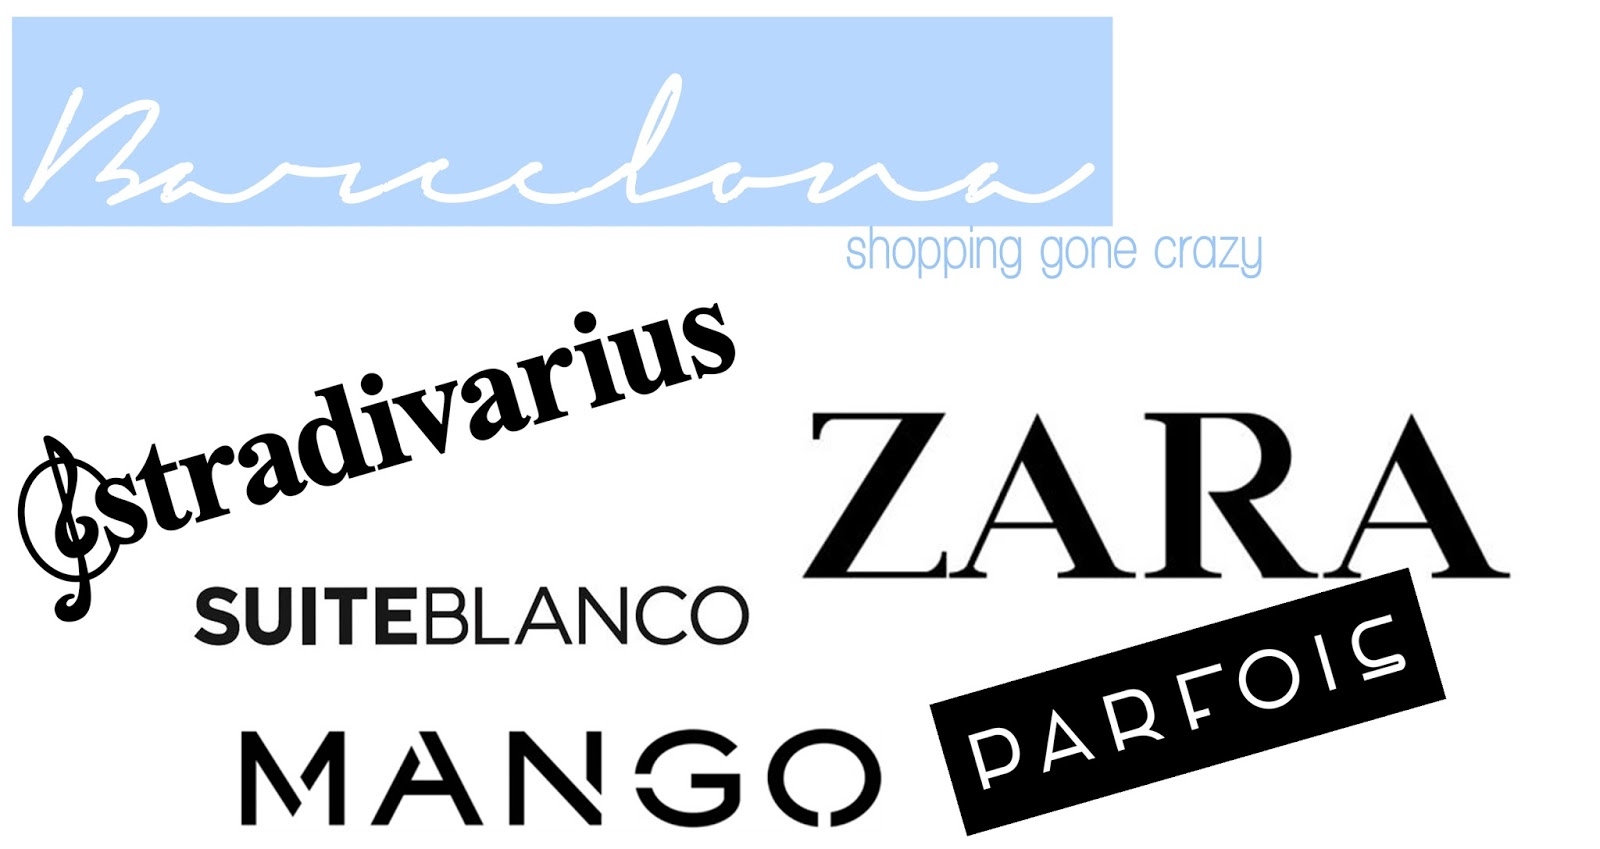 Barcelona shopping haul stradivarius zara suiteblanco mango parfois